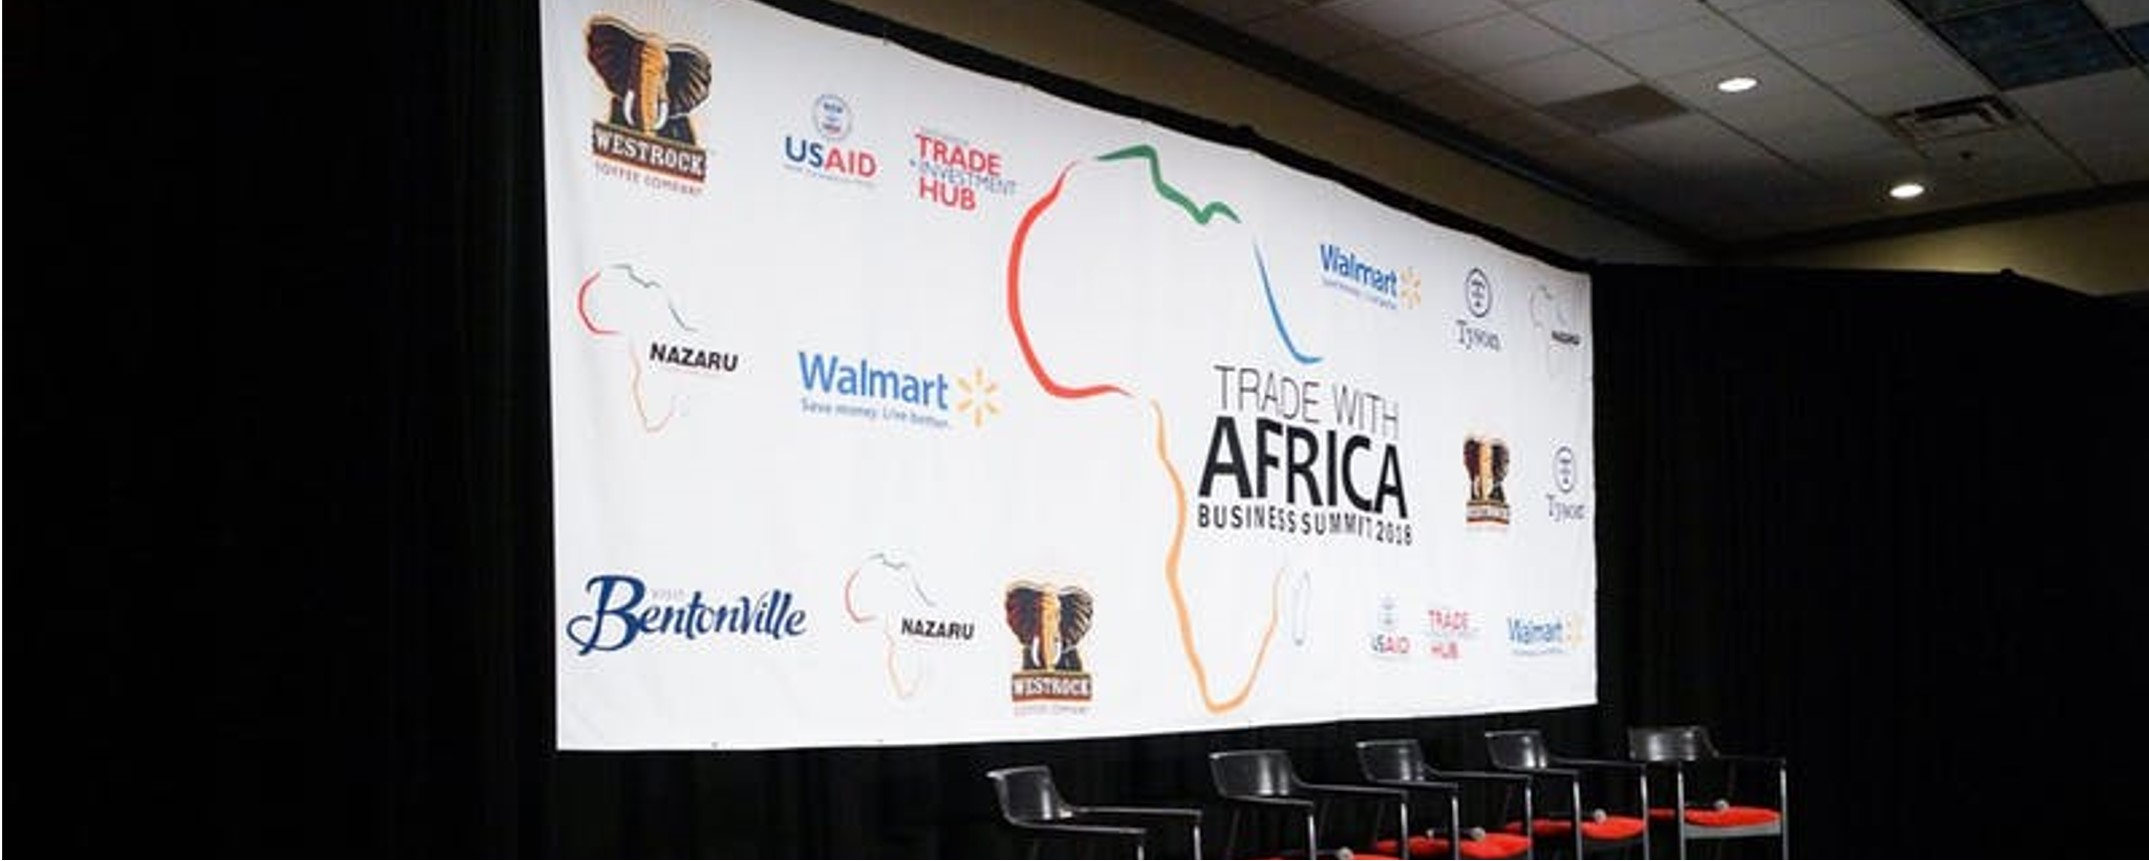 Nazaru LLC - Trade with Africa Business Summit 2019 Movemeback African event cover image